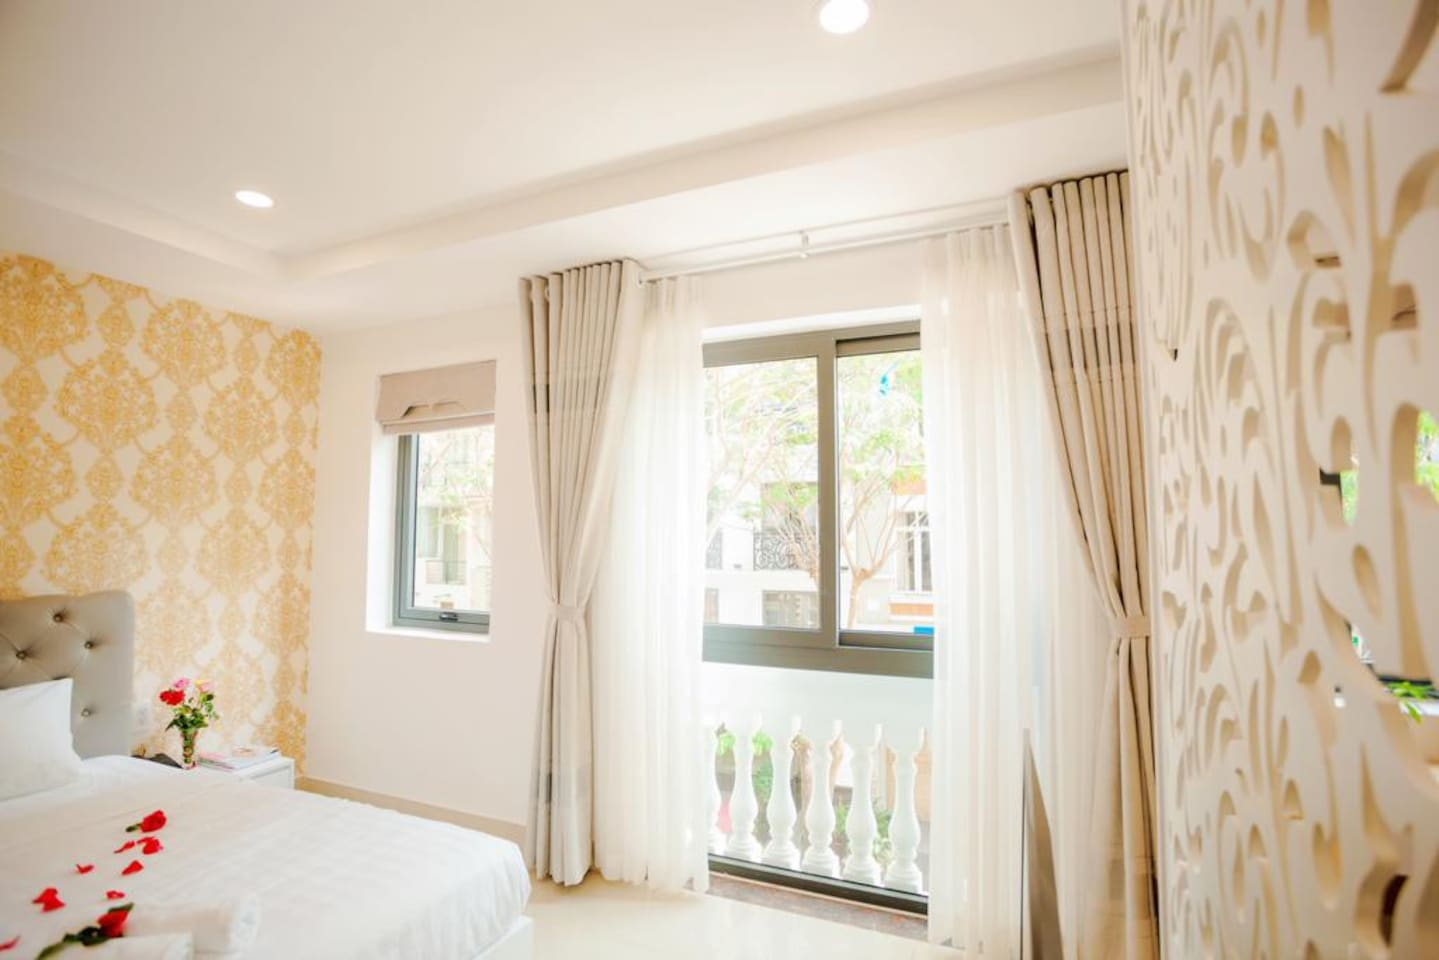 Bedroom with nice street view